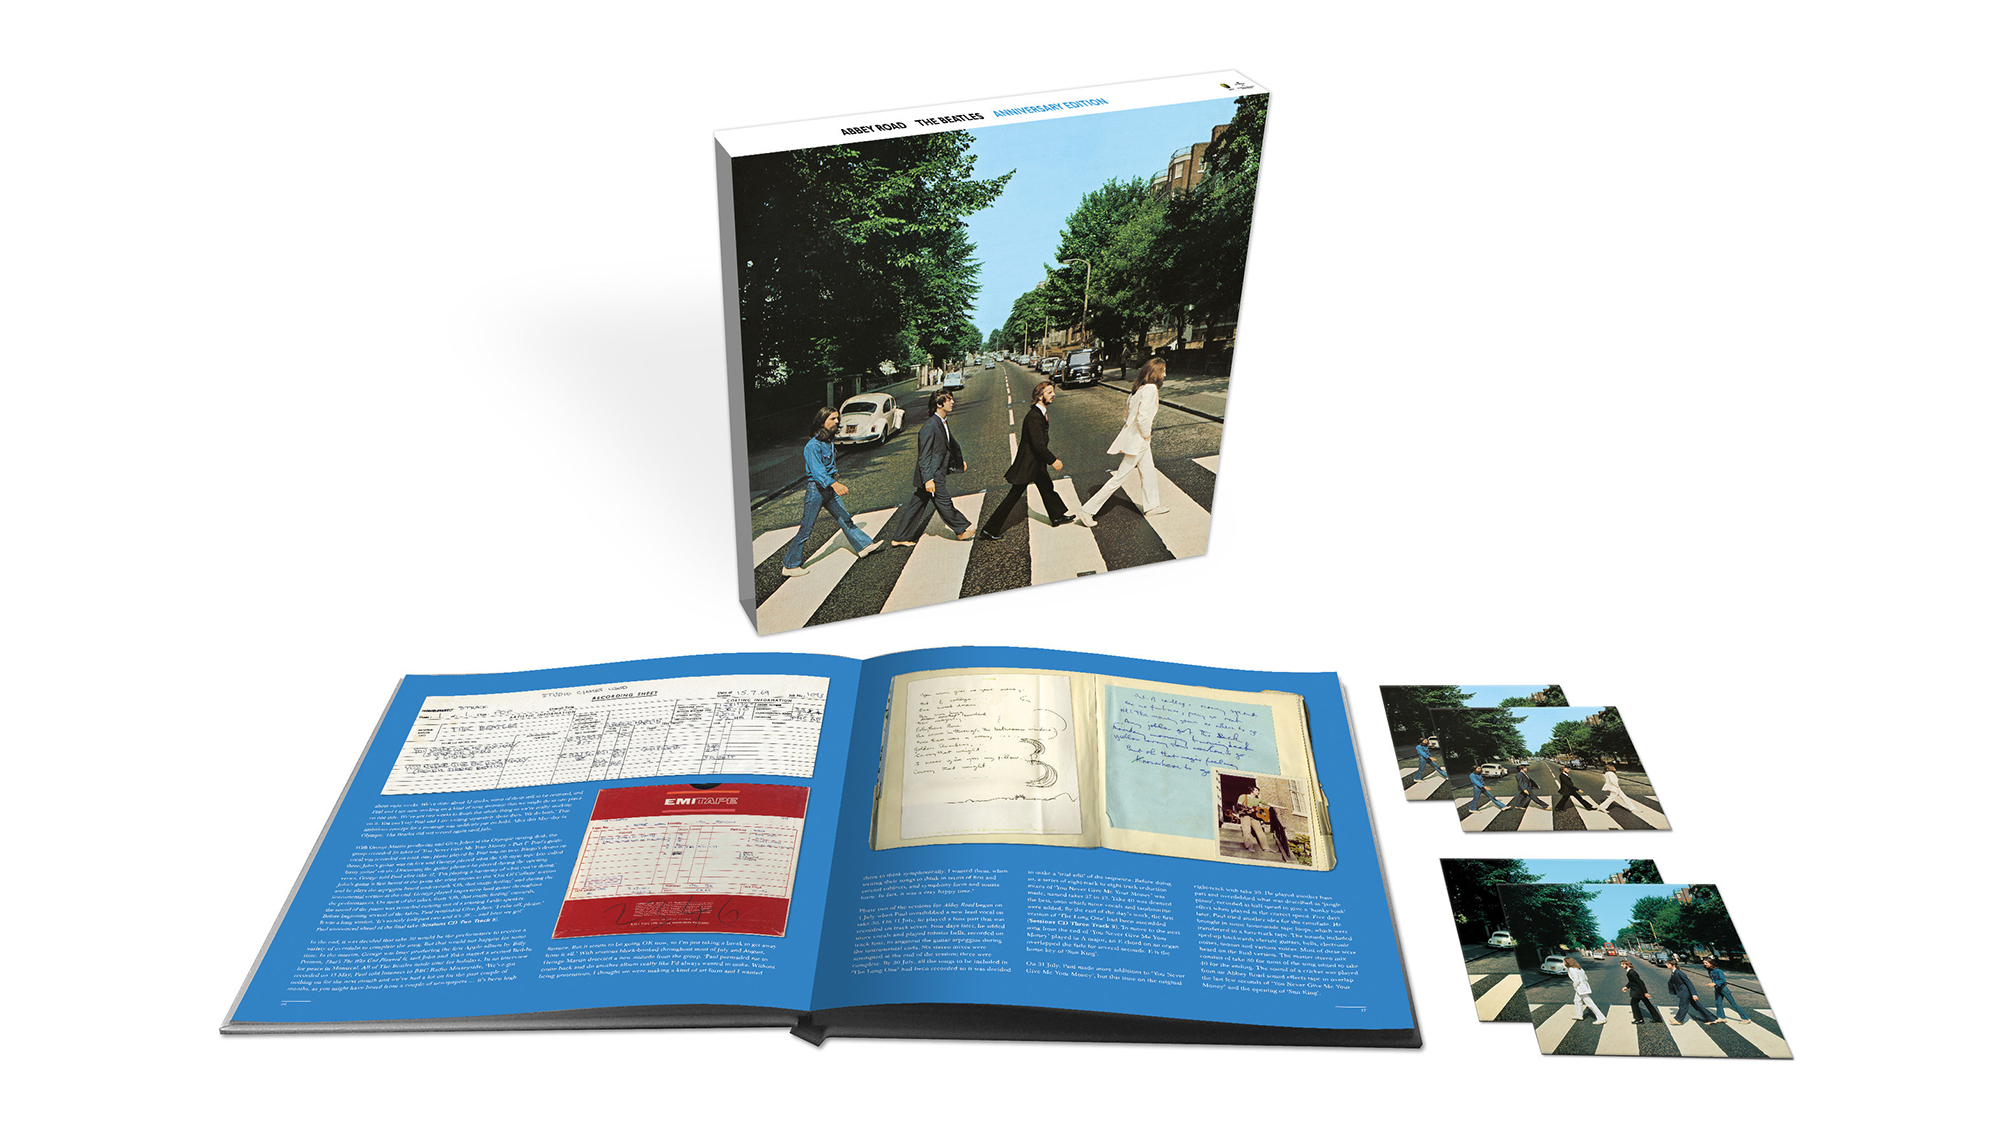 Hear The Beatles' Abbey Road in hi-res and Dolby Atmos | What Hi-Fi?